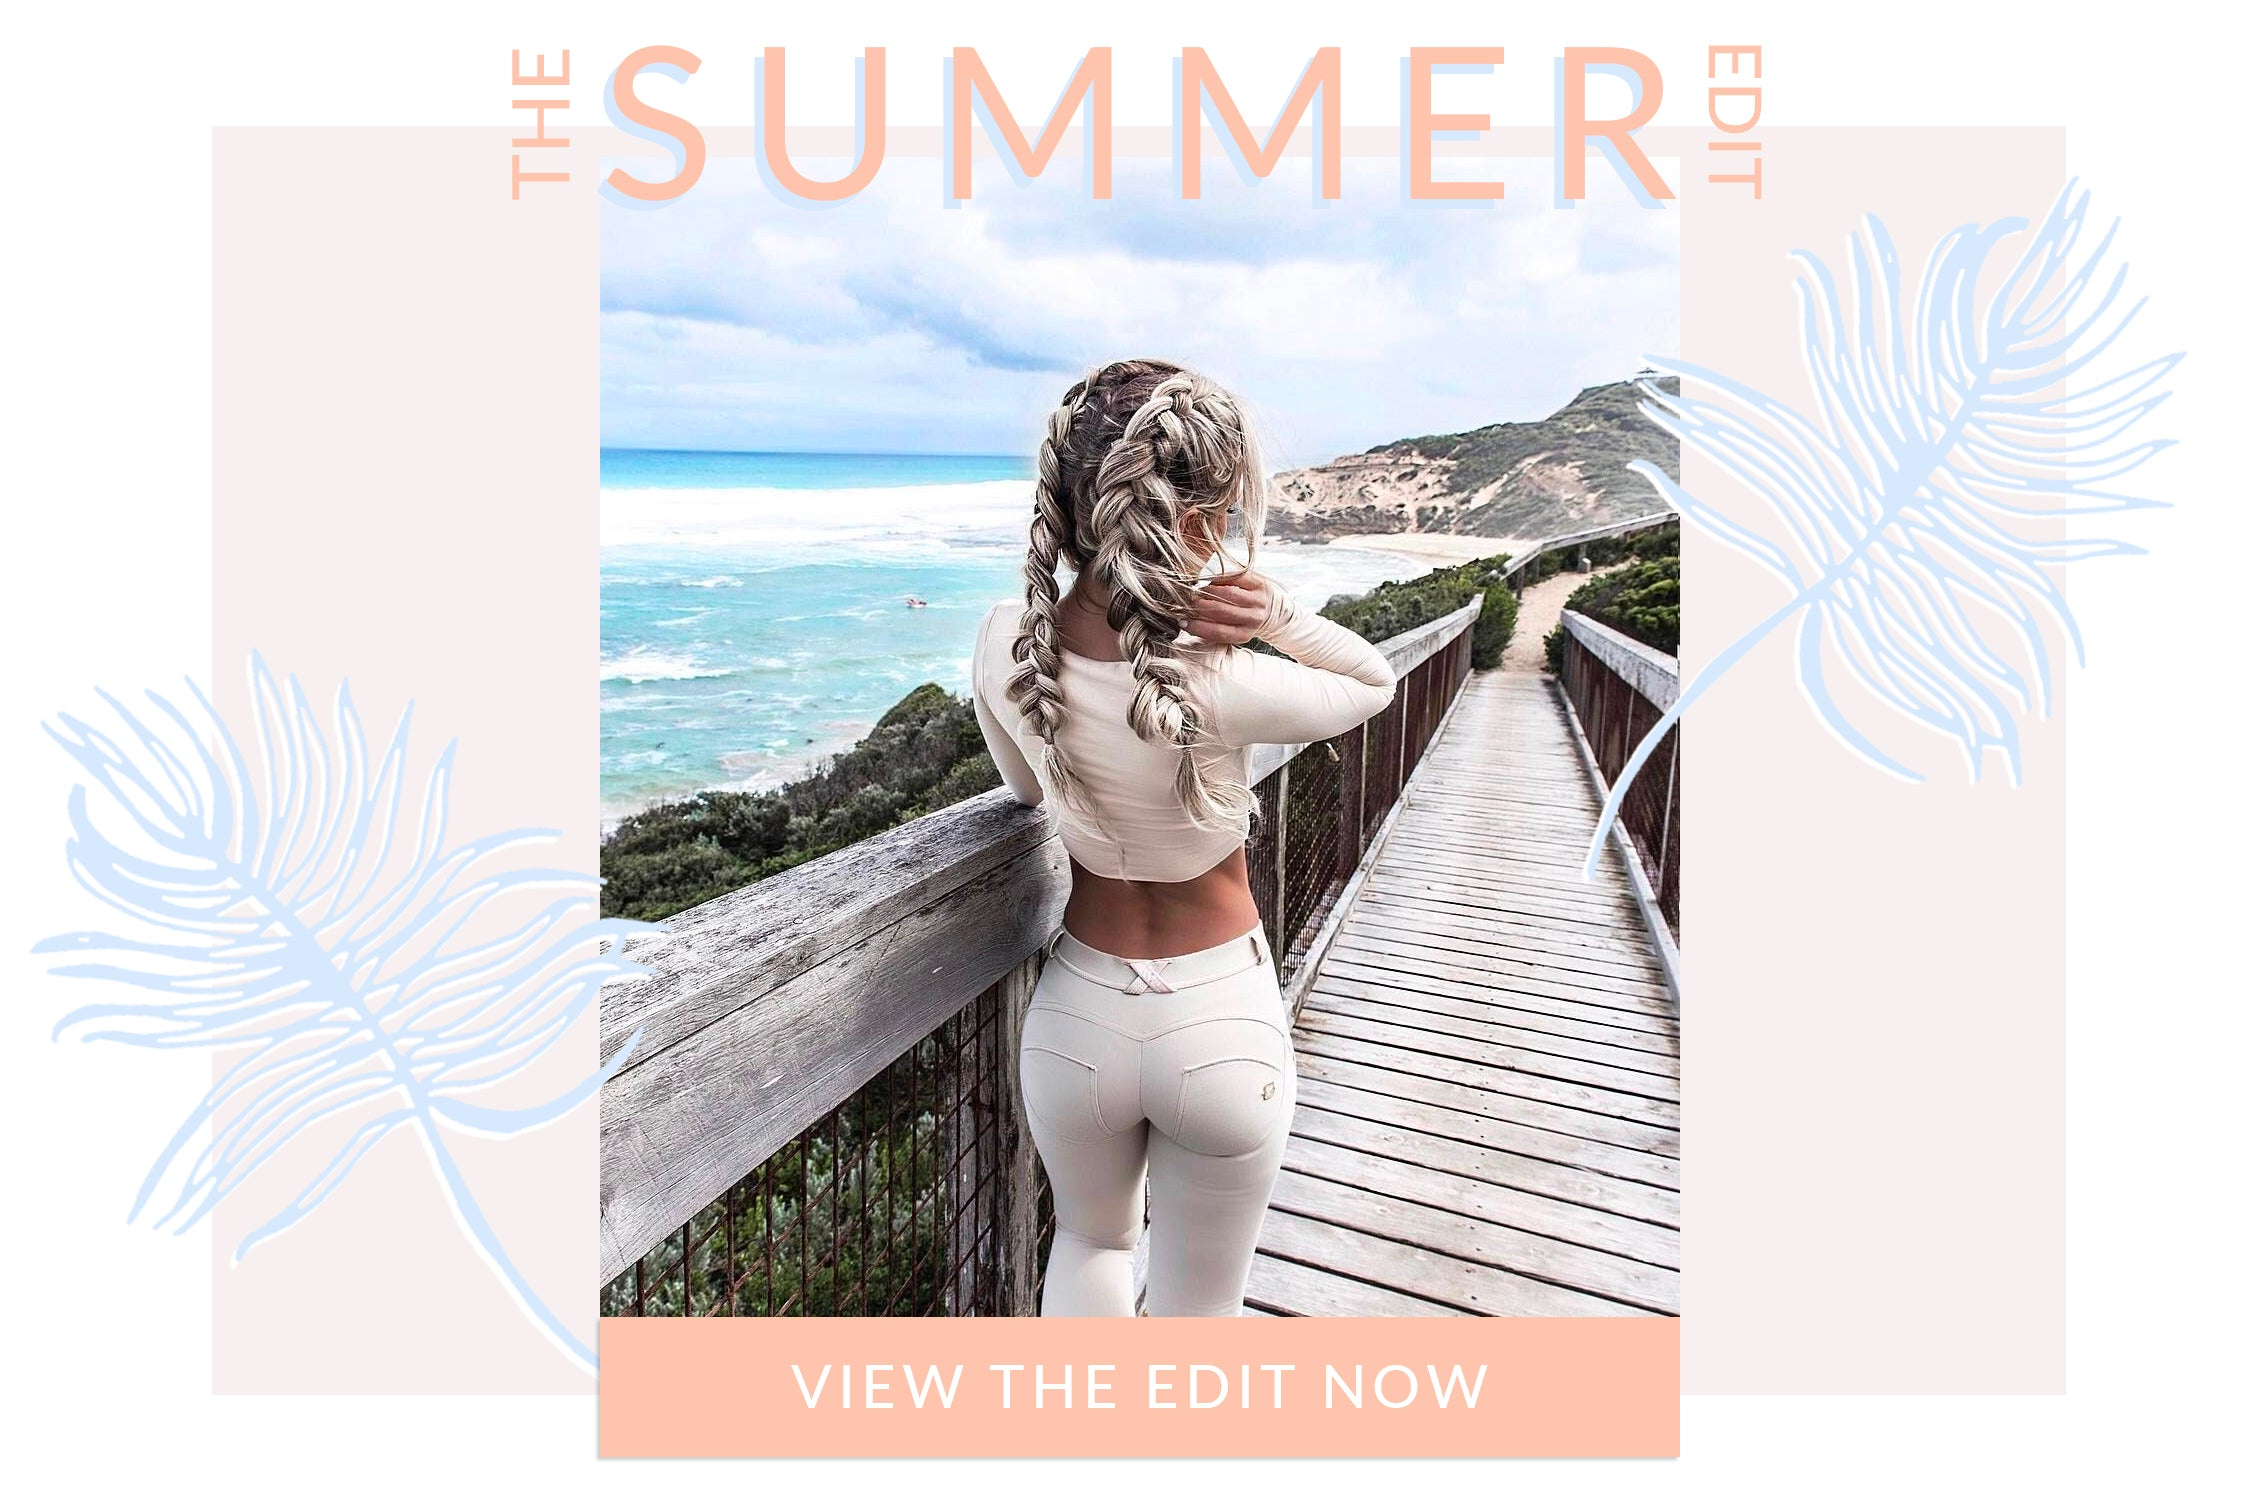 The summer edit. View the edit now